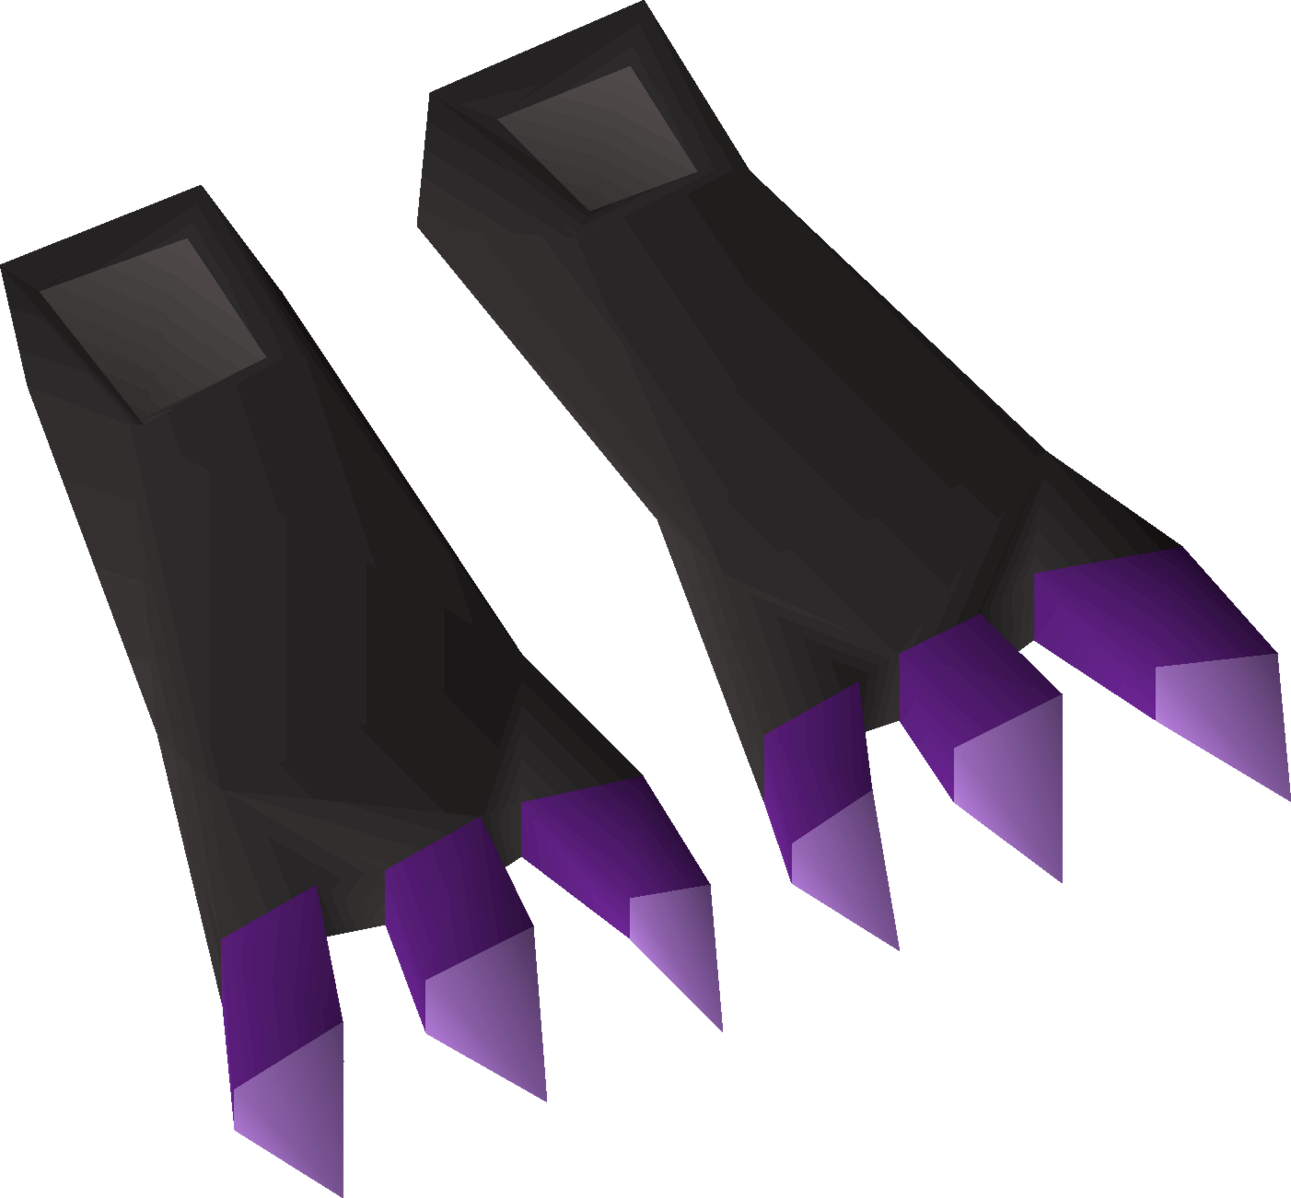 1291px-Dark_flippers_detail.png?7cee1